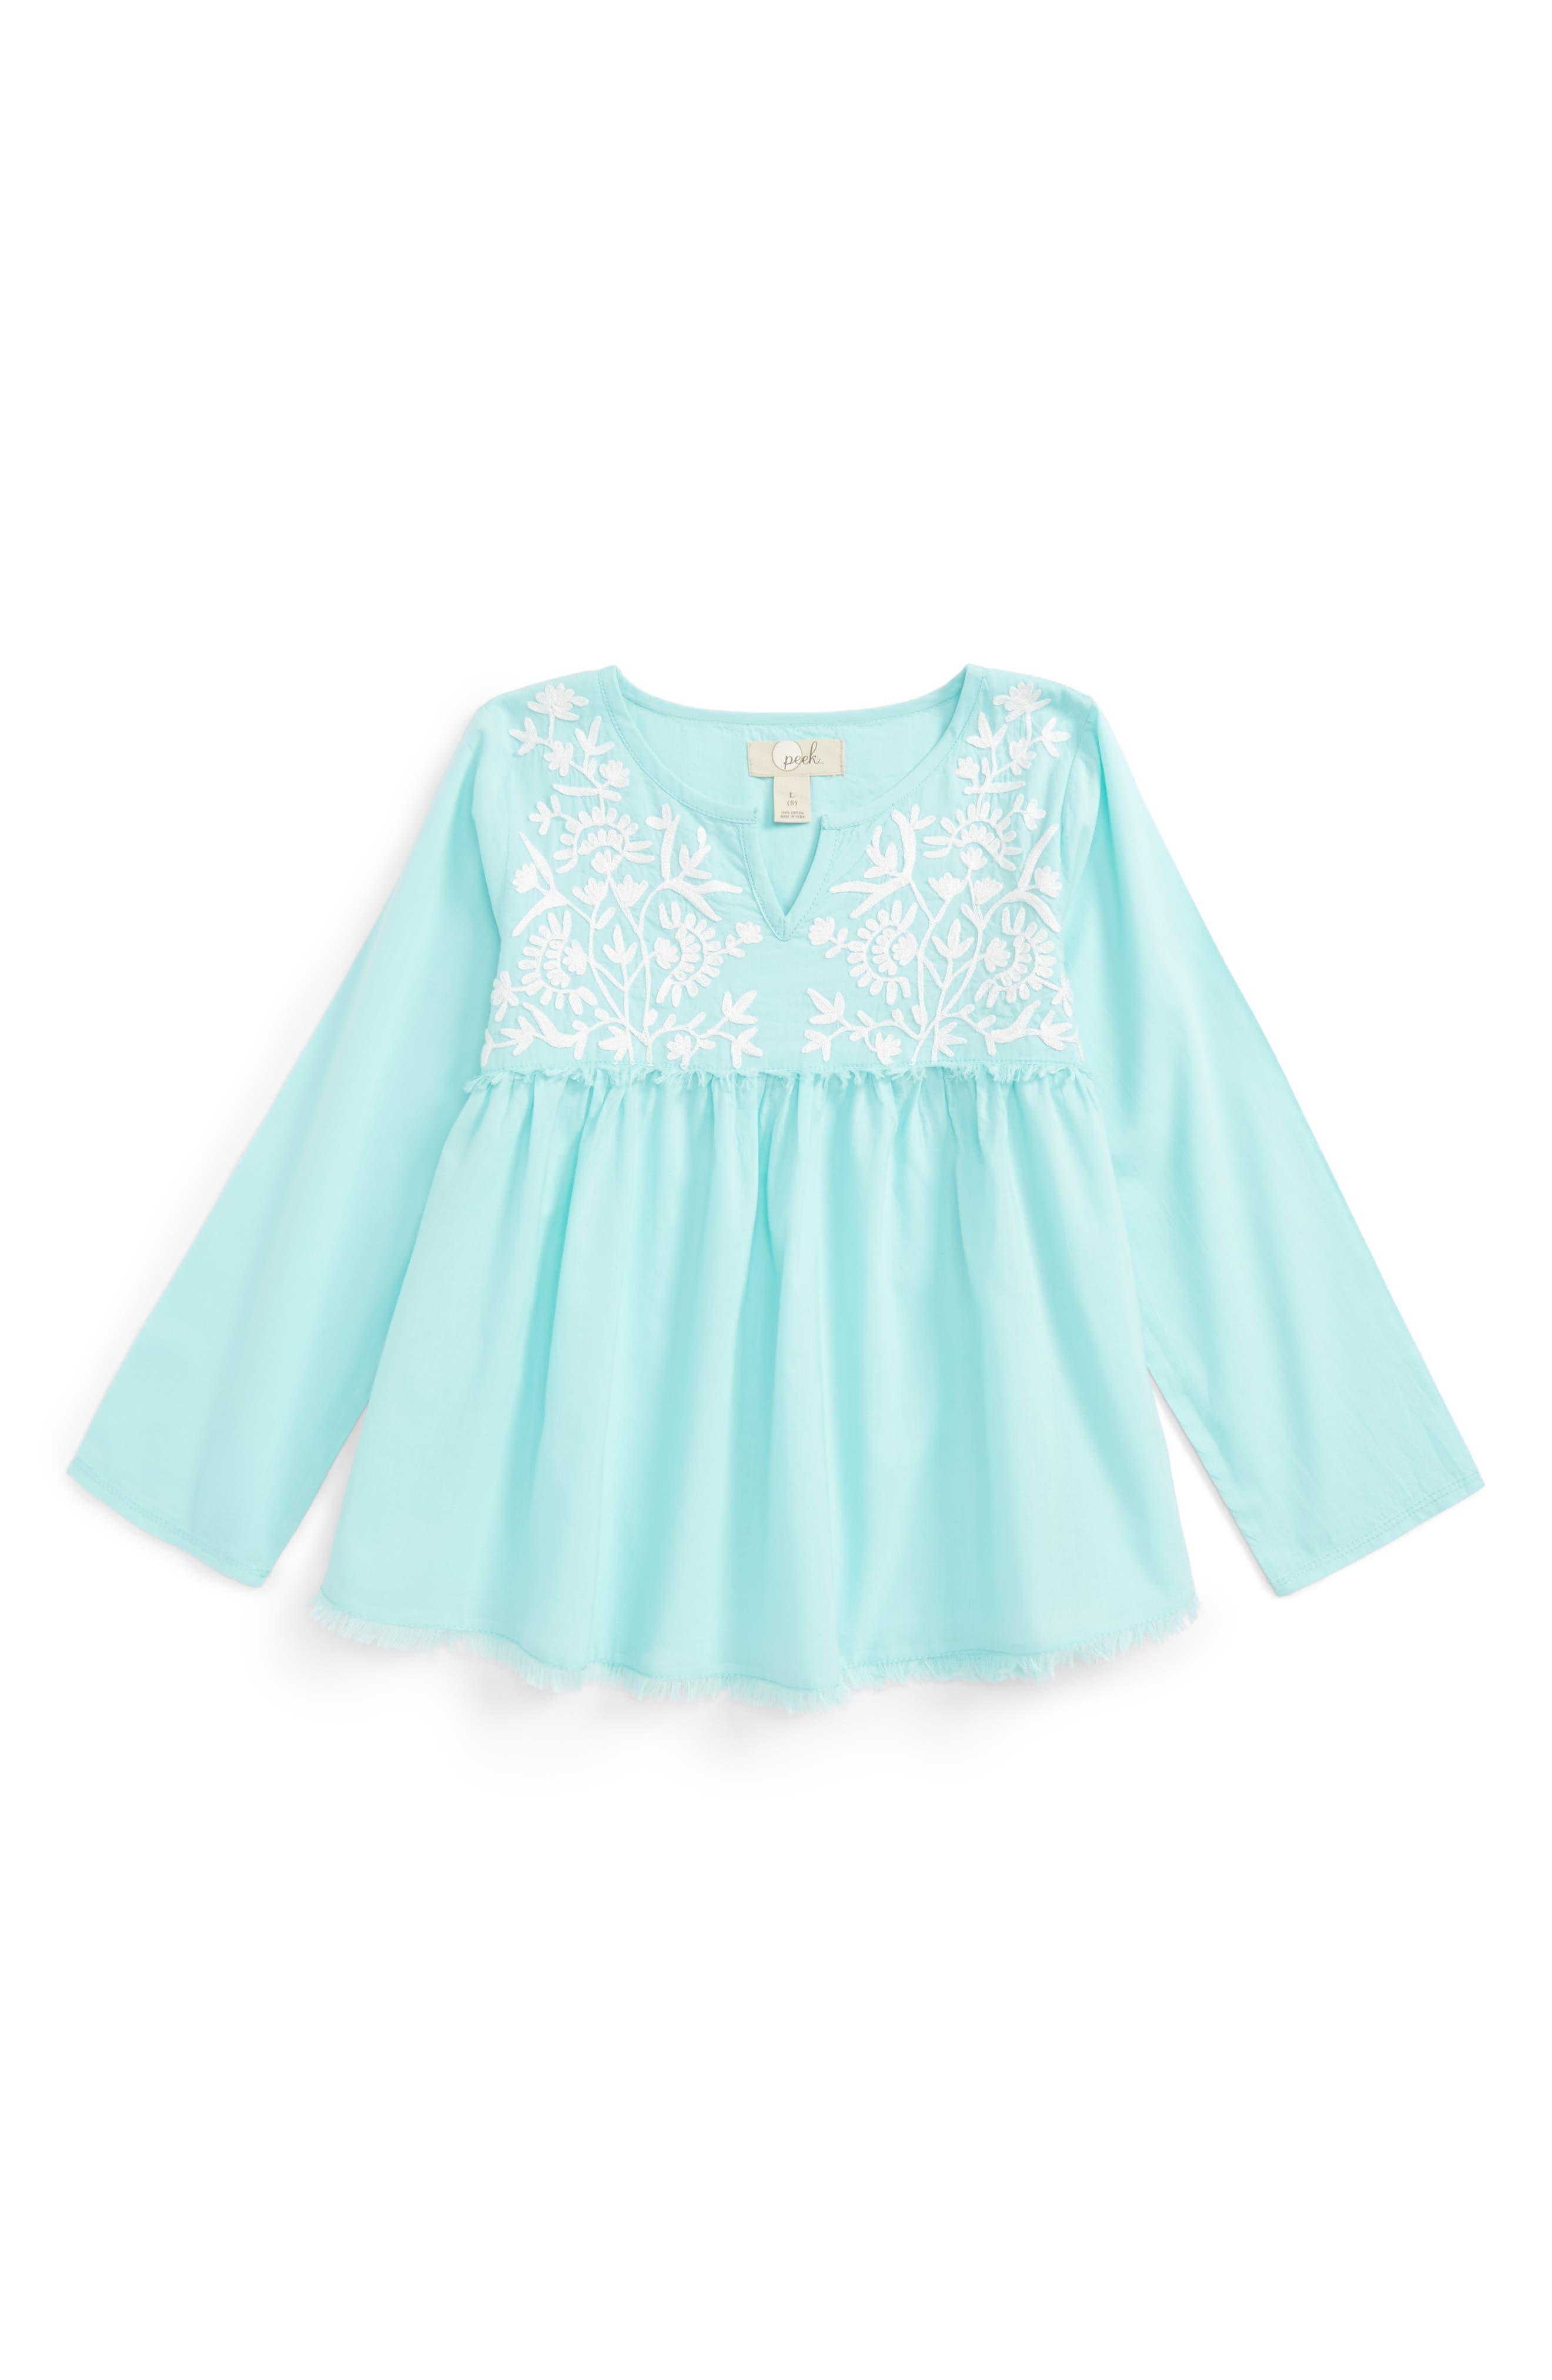 Alternate Image 1 Selected - Peek Daphne Embroidered Top (Toddler Girls, Little Girls & Big Girls)